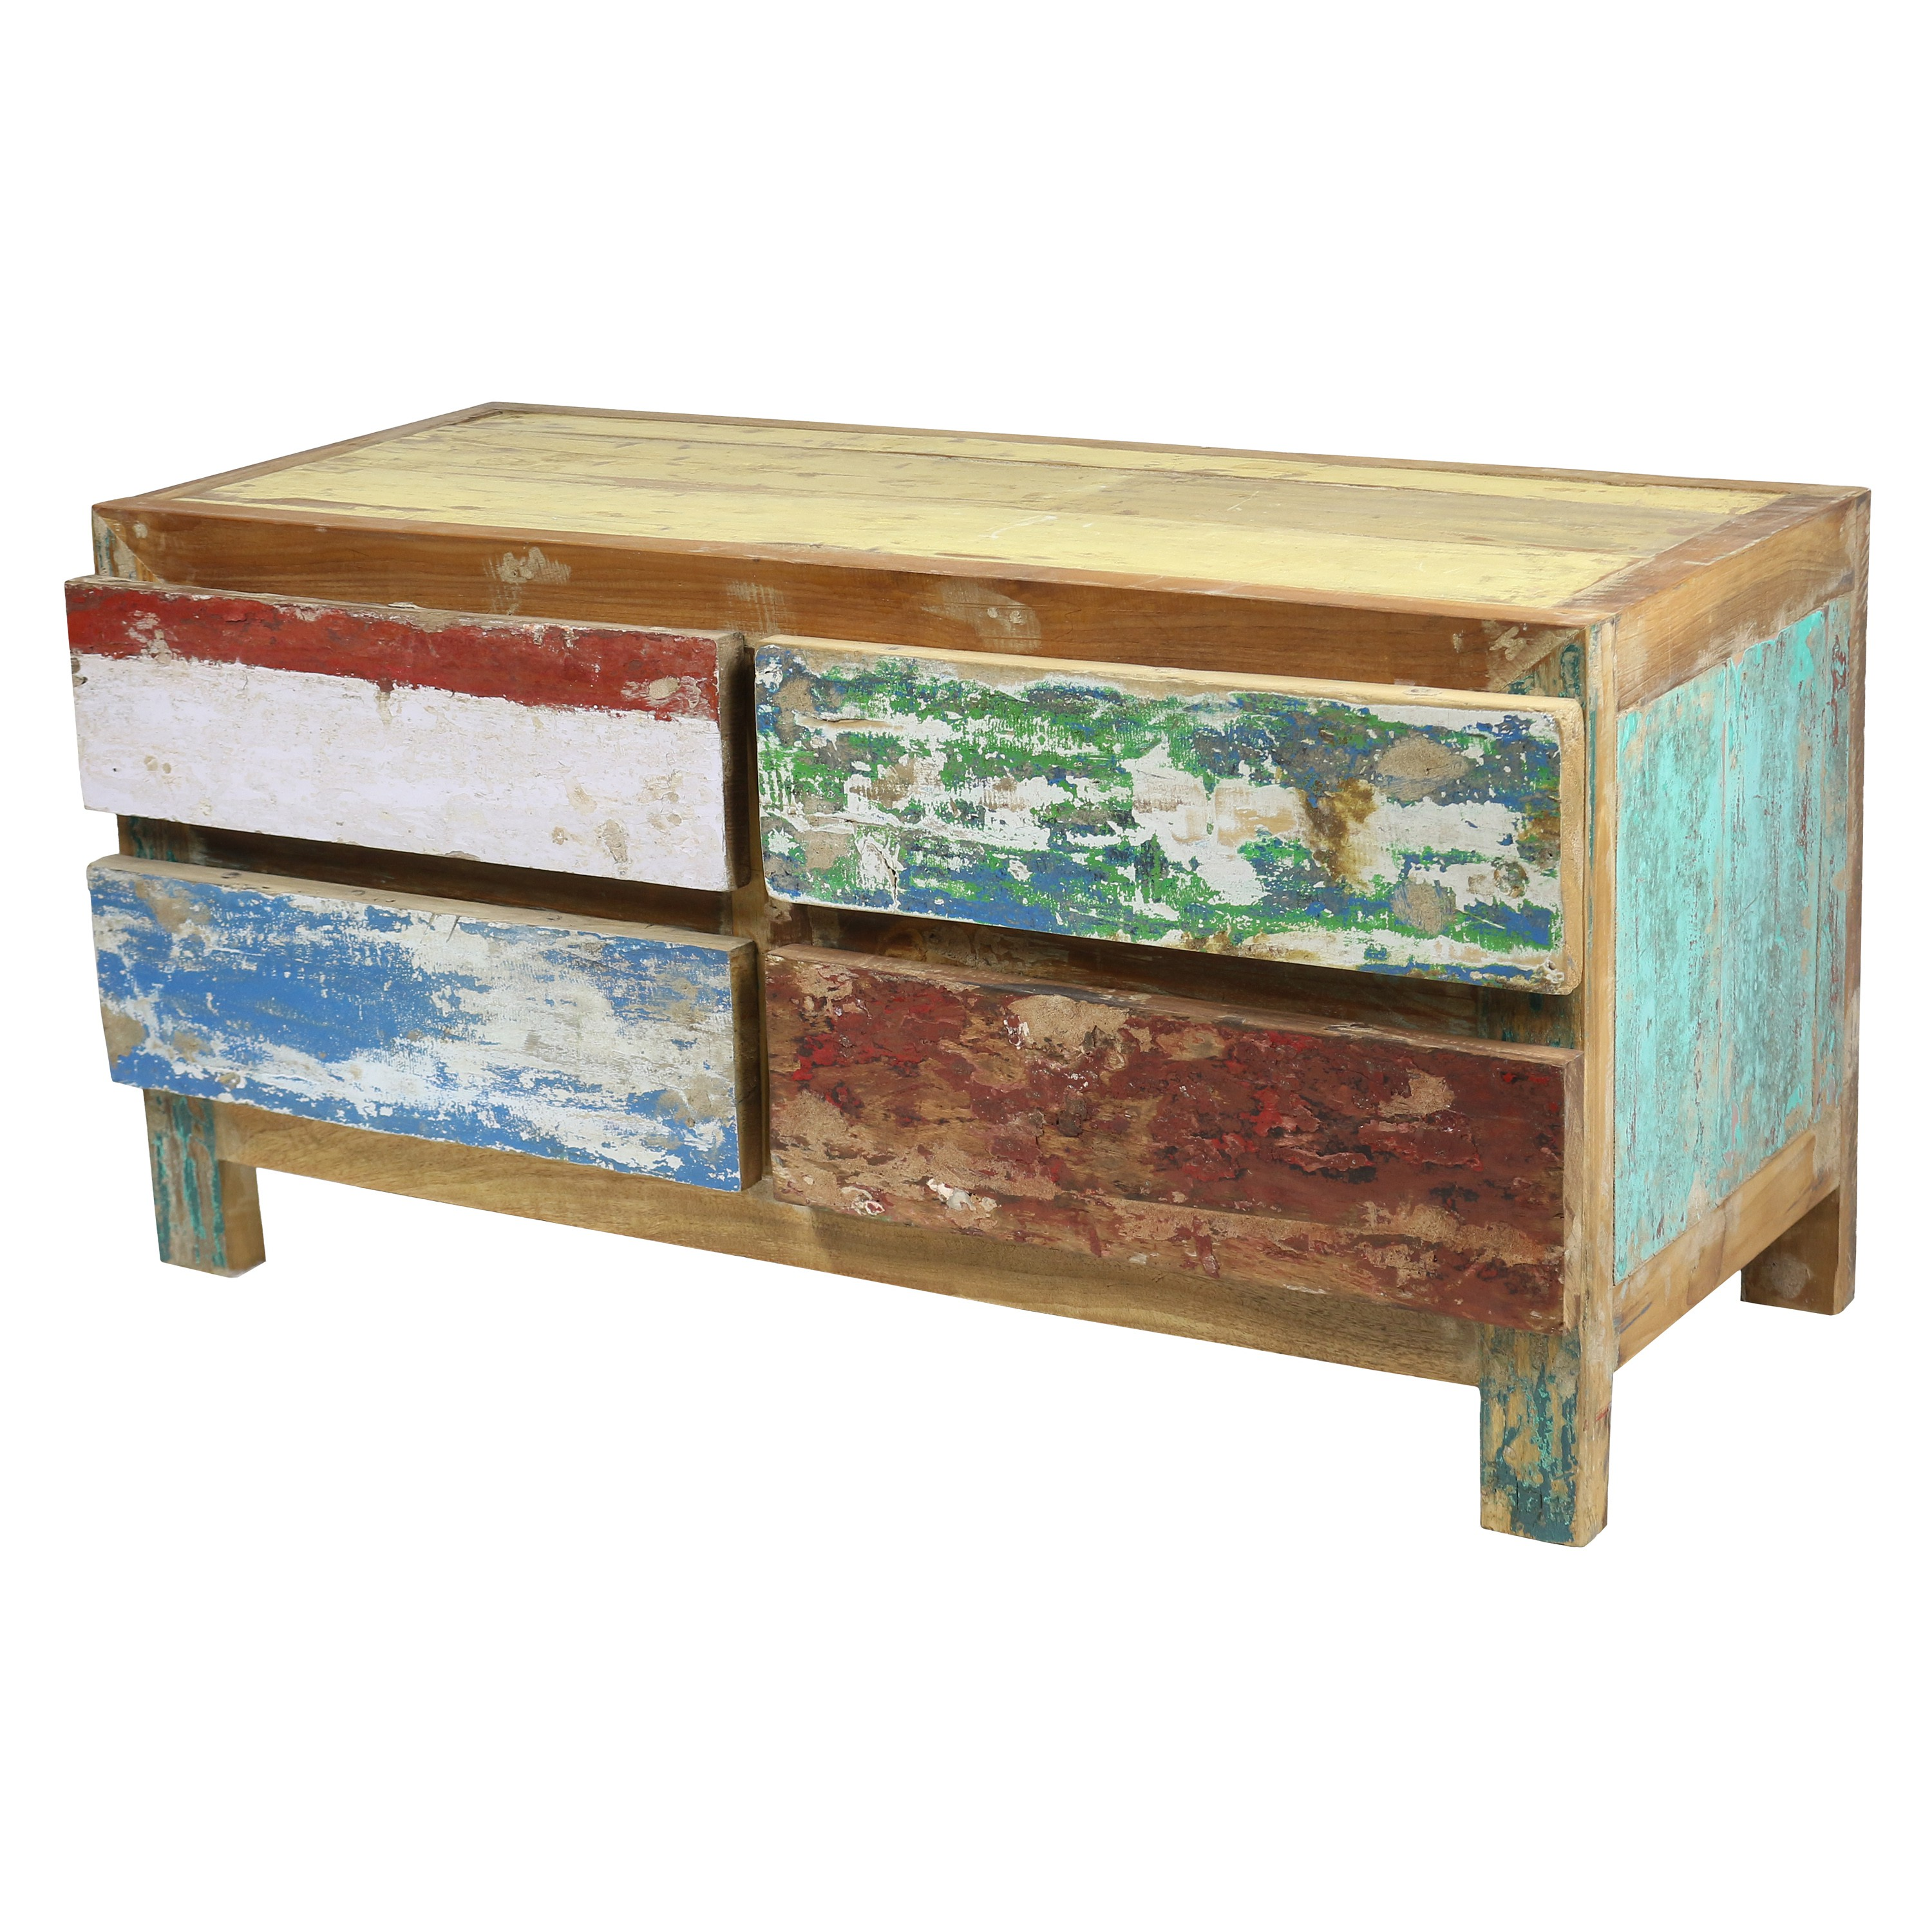 recycling teakholz kommode sideboard schrank upcycling massiv holz 110 cm breit. Black Bedroom Furniture Sets. Home Design Ideas